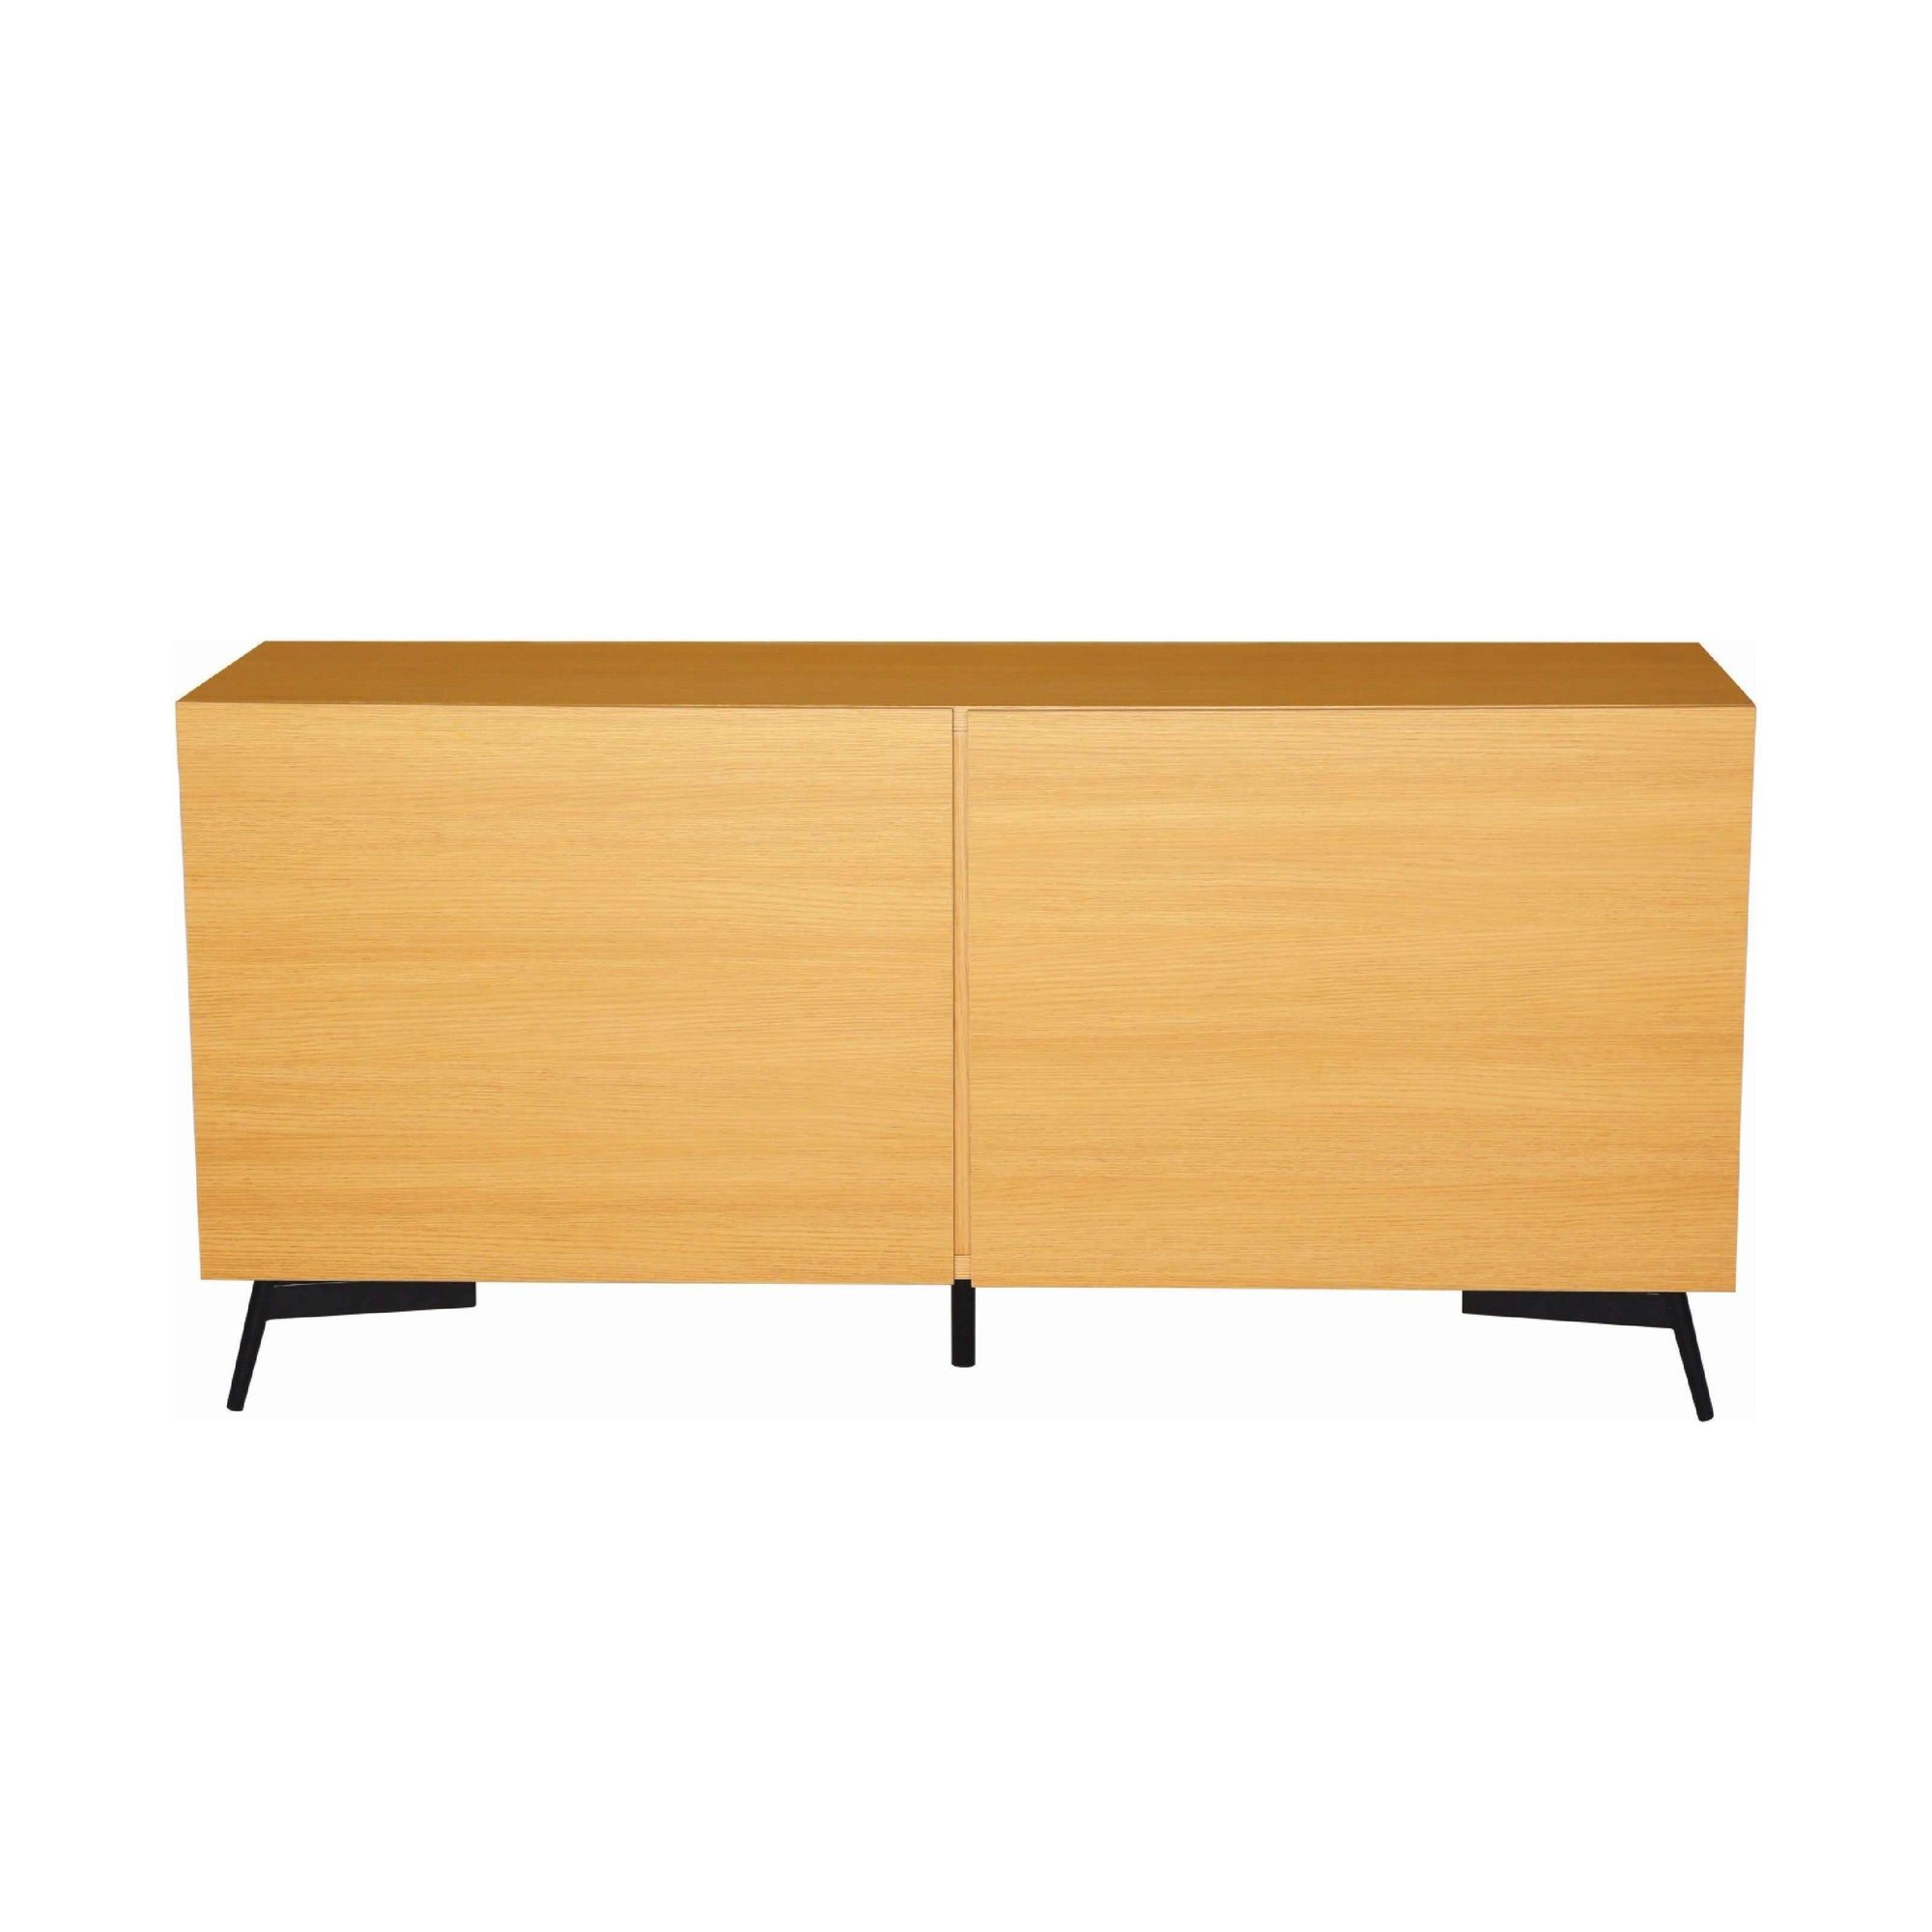 AKON Sideboard On Matt Black Epoxy Leg, Oak Laminate Body